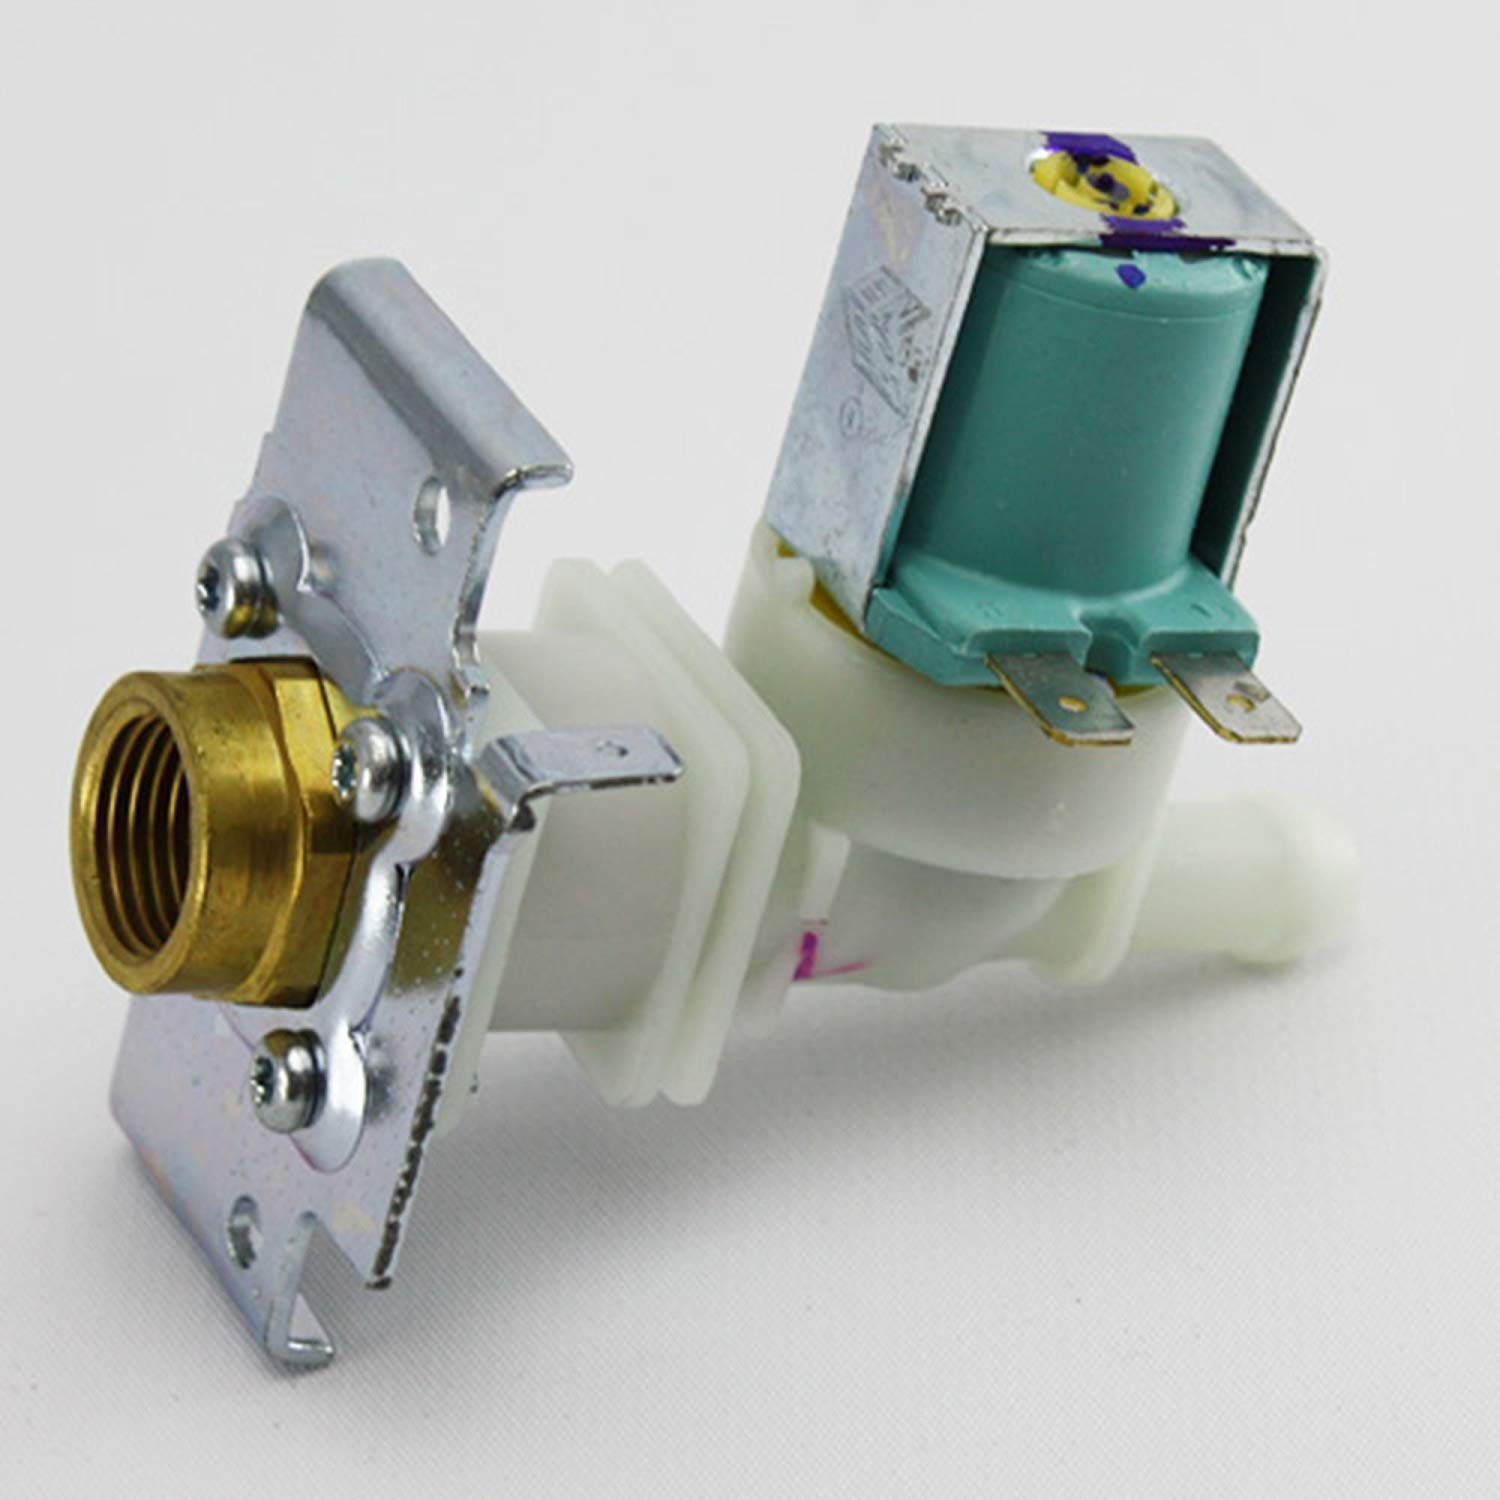 189533 - Thermador Aftermarket Replacement Dishwasher Water Valve